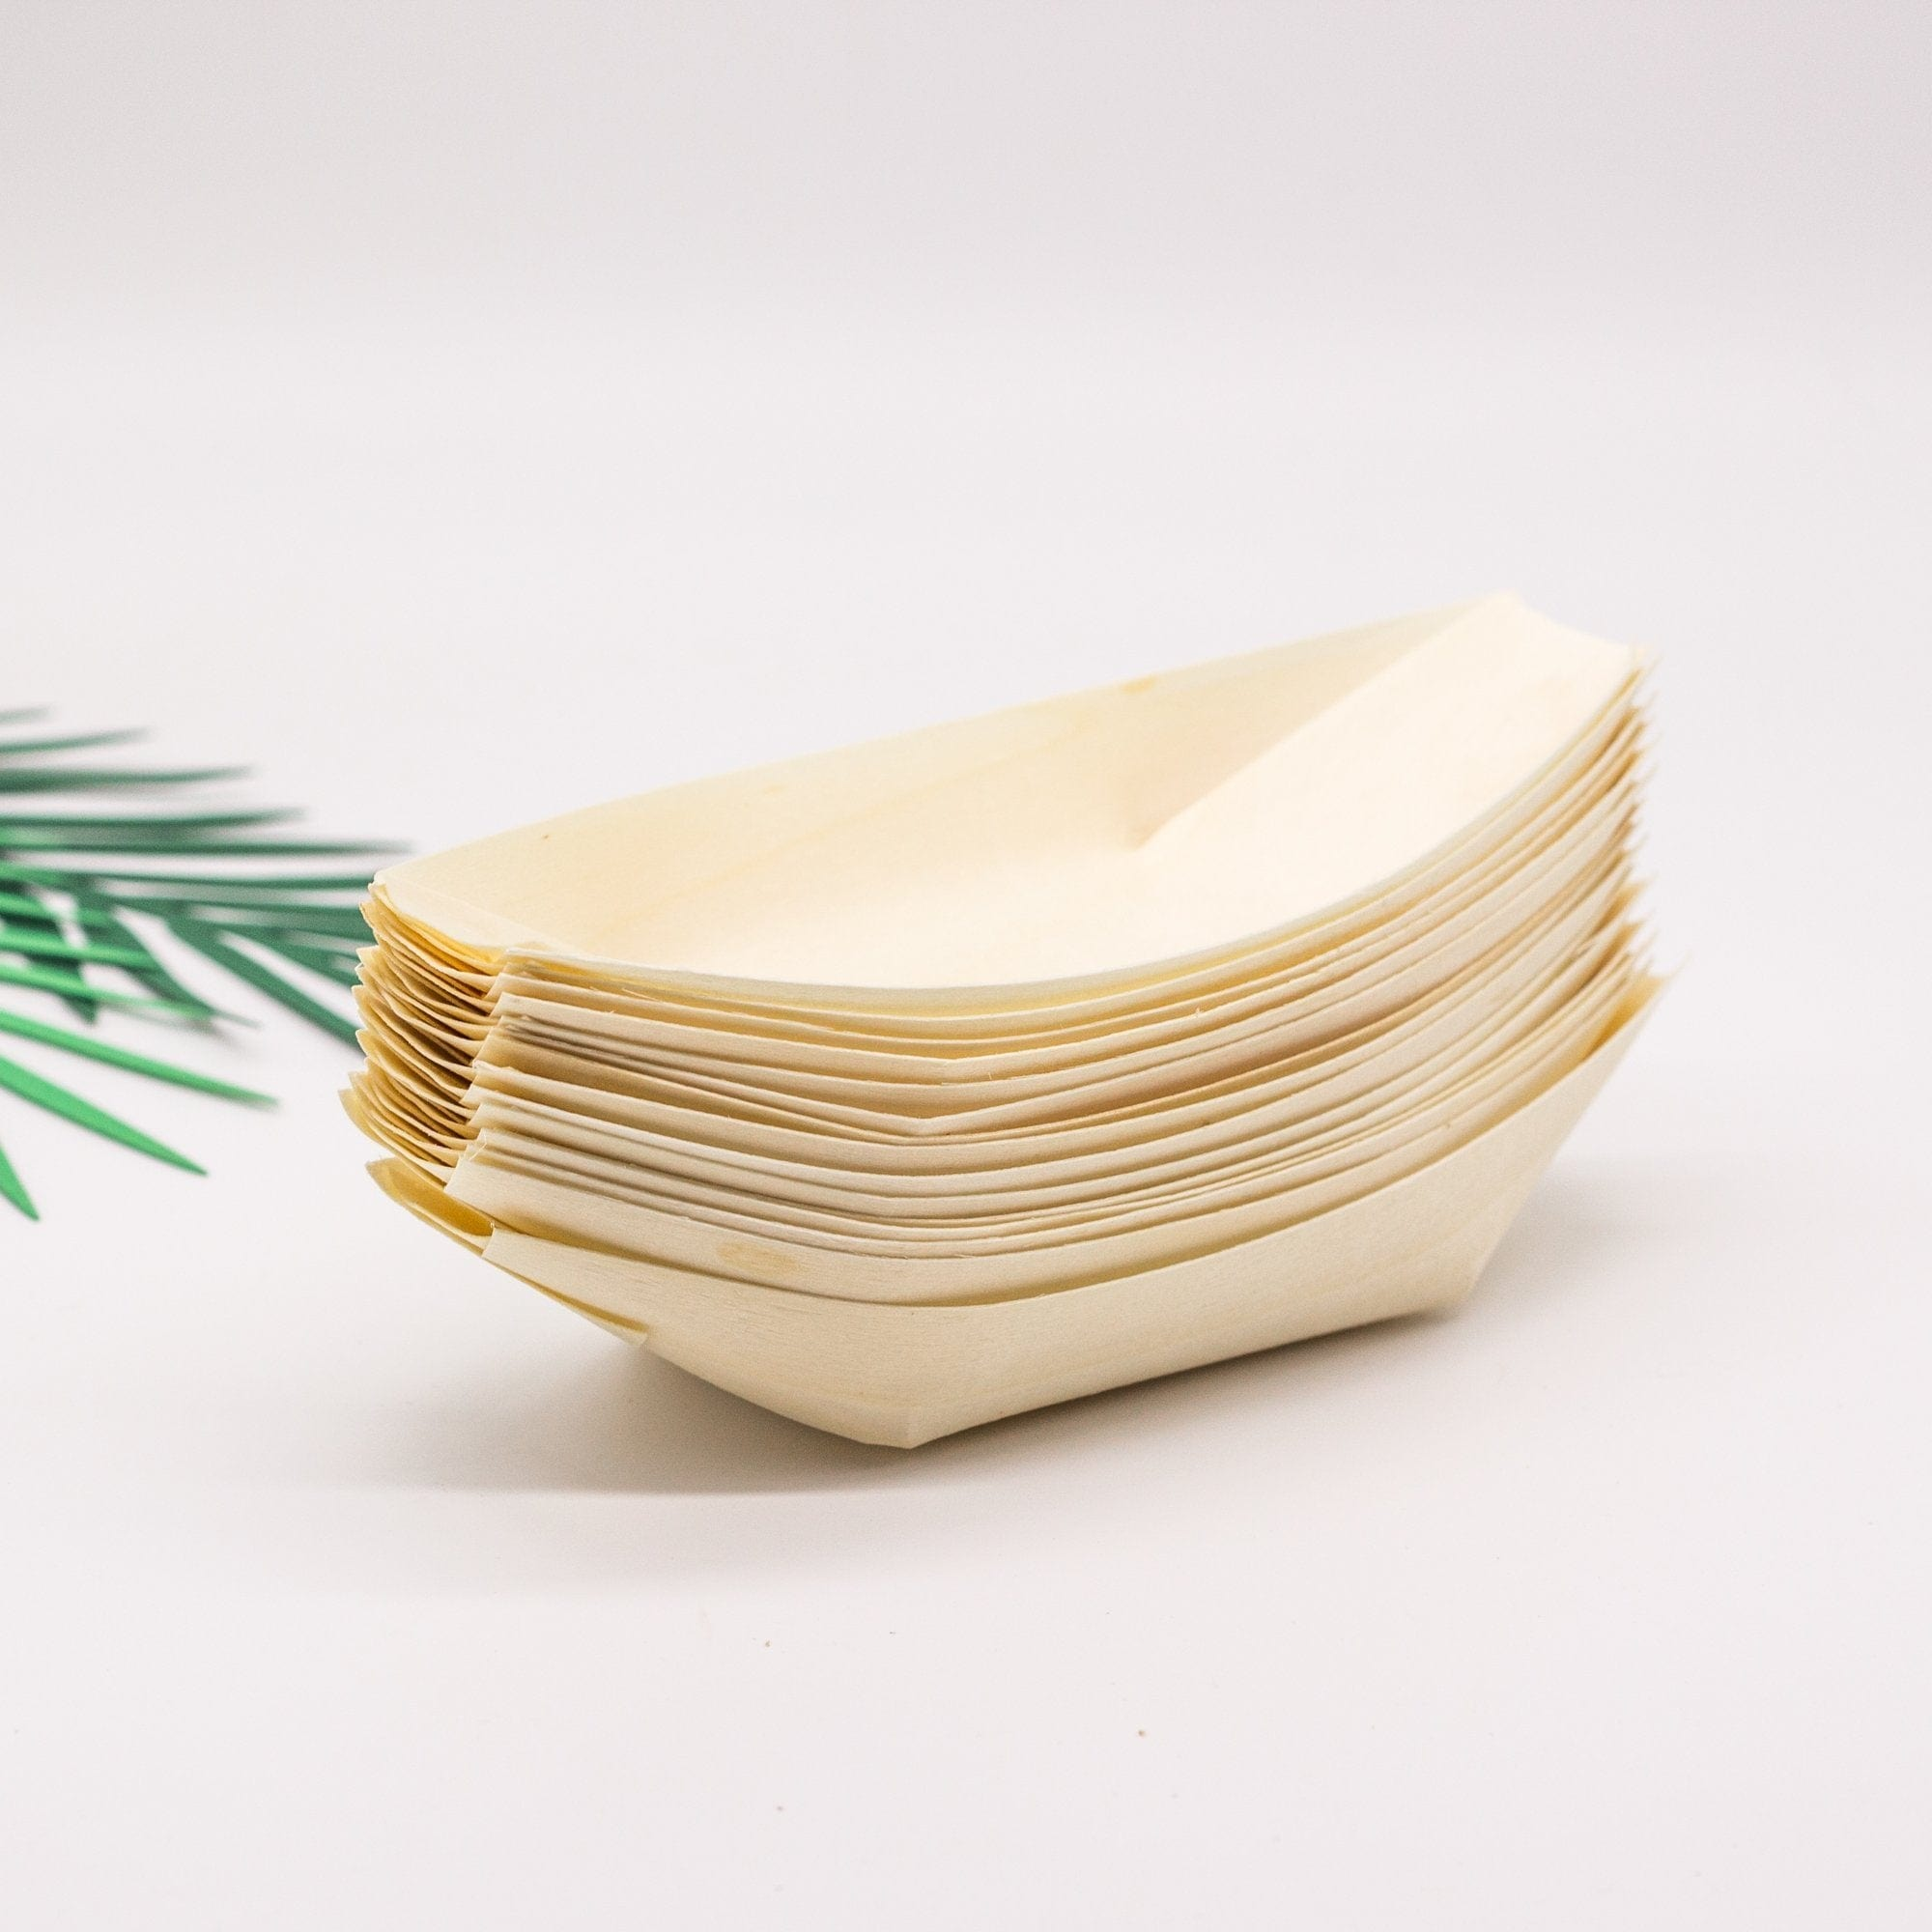 Wooden Canape Boats | Eco Biodegradable Party Supplies for Weddings and Events